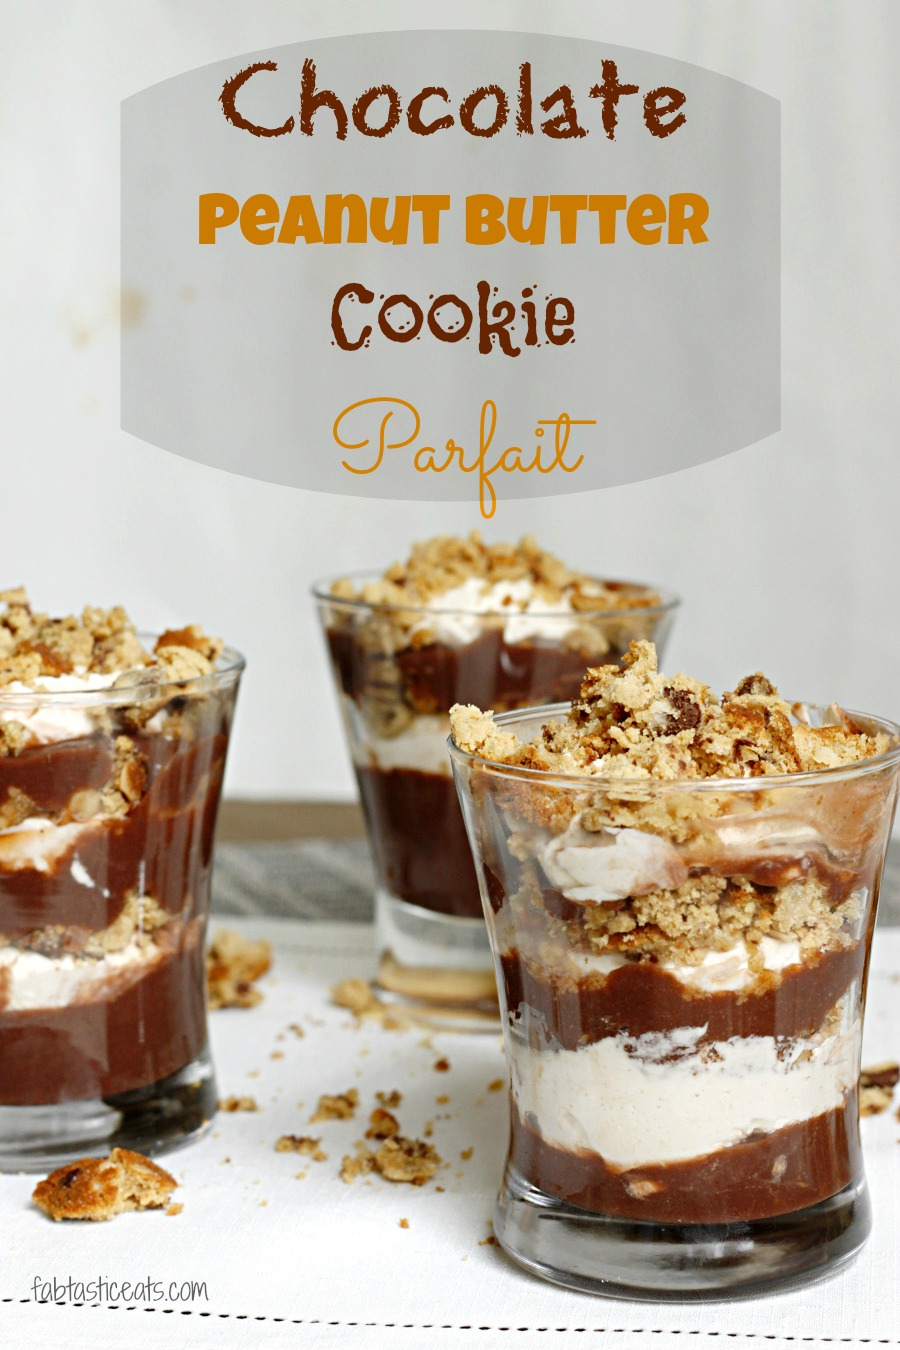 Chocolate Peanut Butter Cookie Parfait